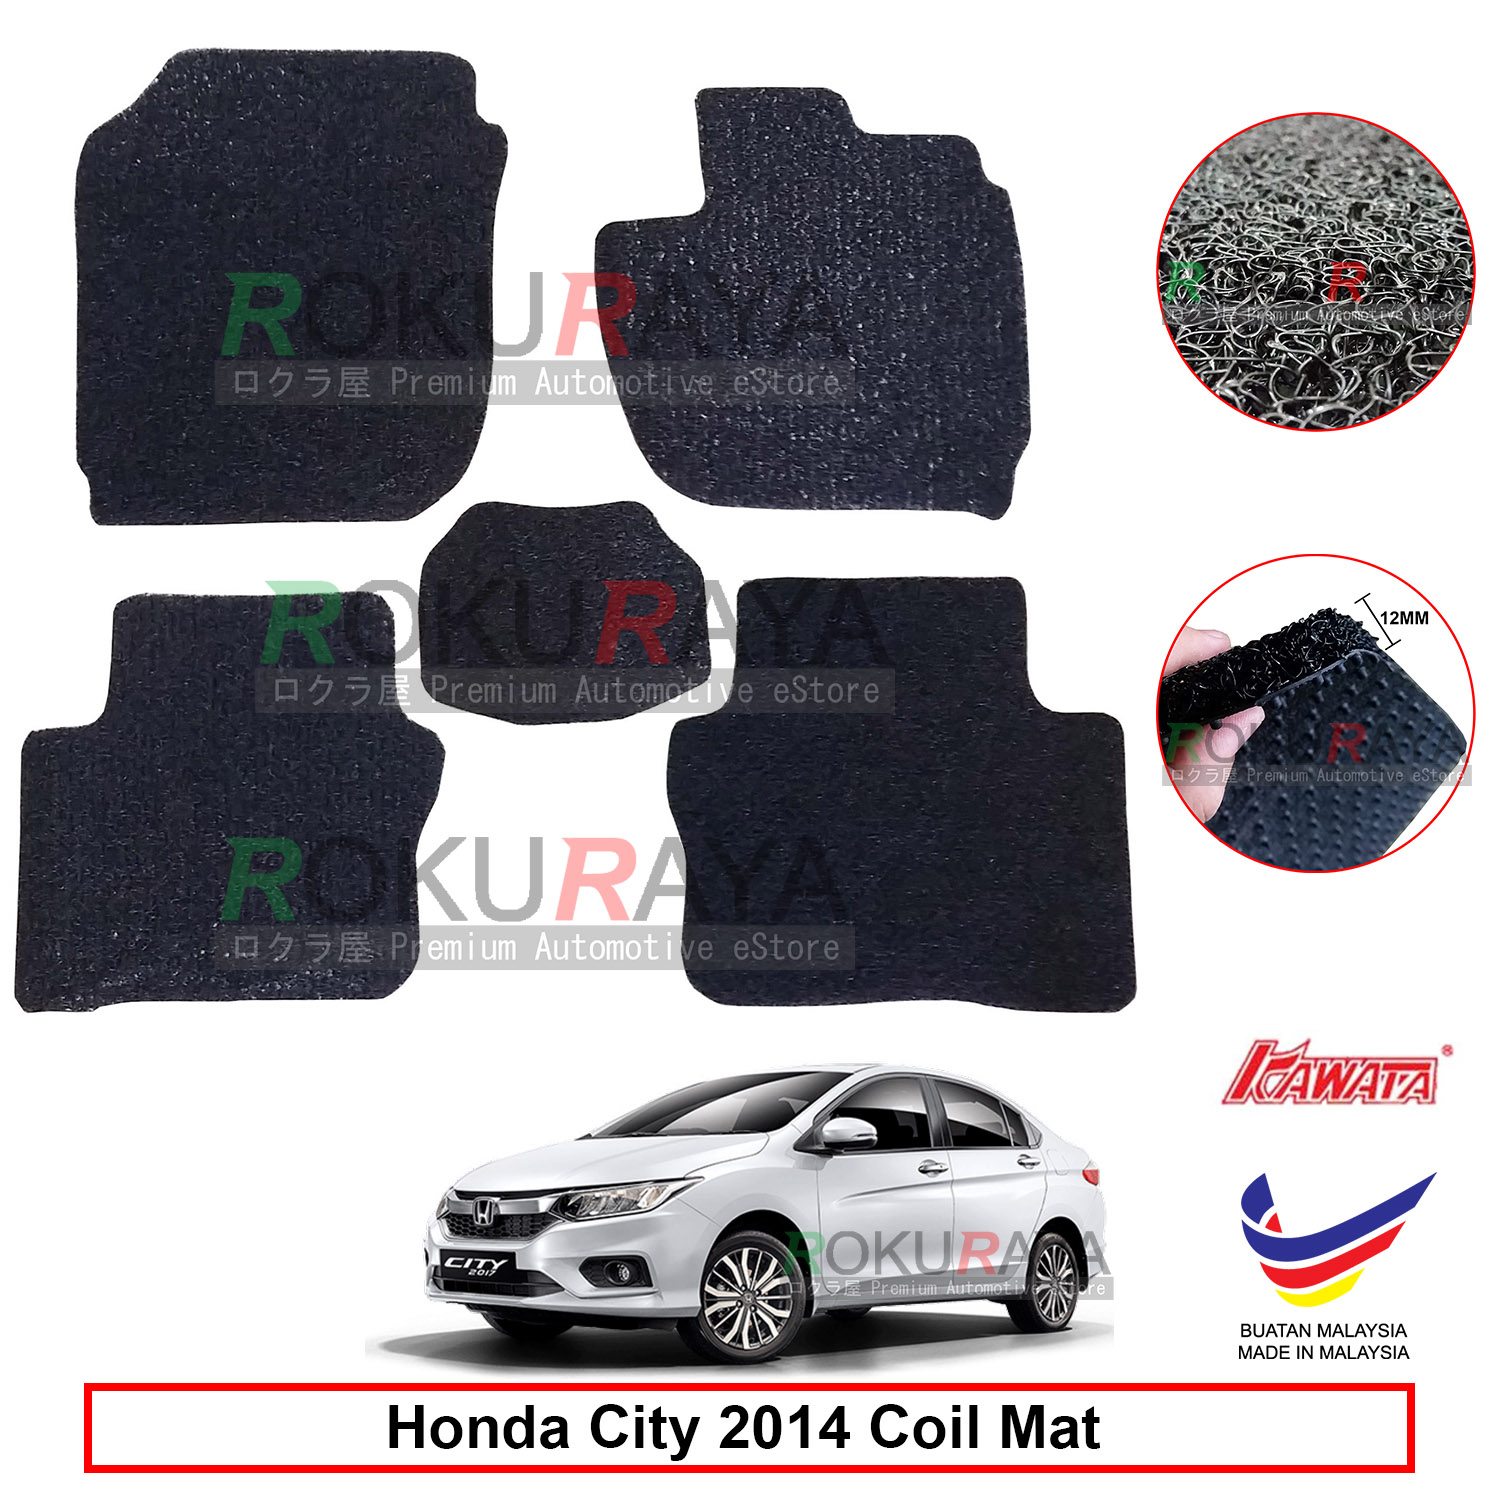 Honda City (6th Gen) 2013 12mm Coil Floor Mat (Black)(Kawata Malaysia)